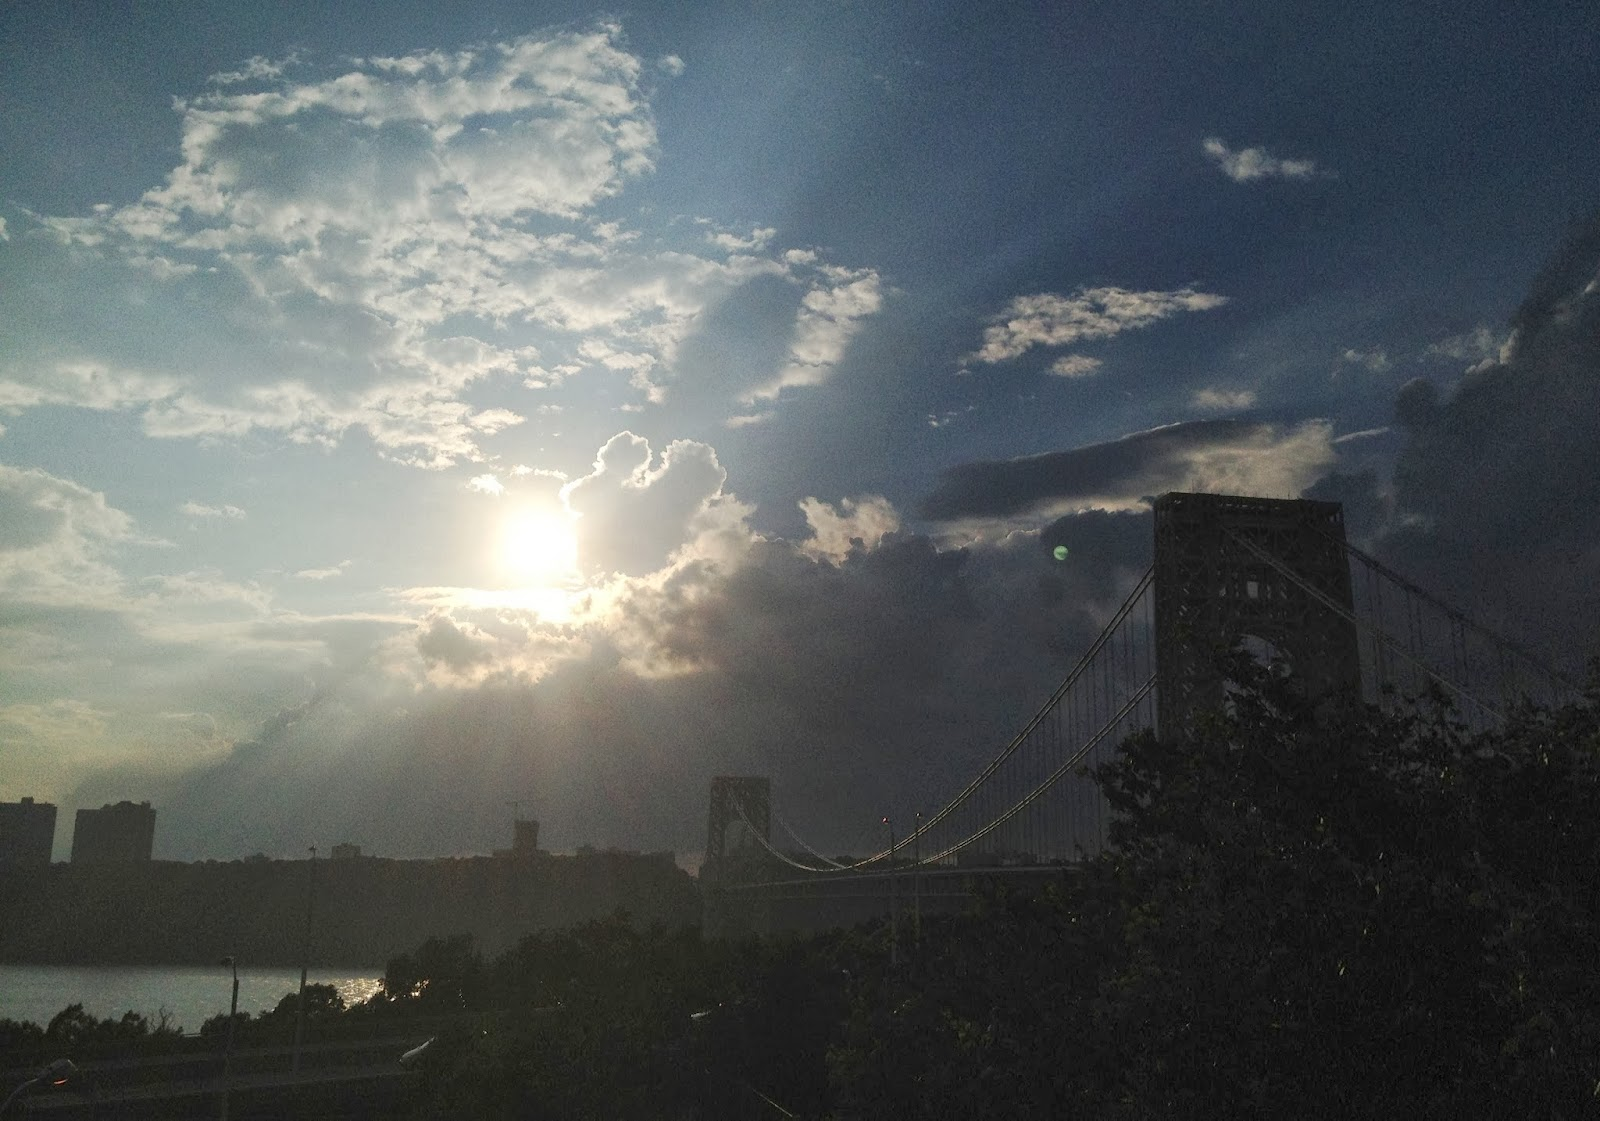 new york city, nyc, george washington bridge, gw bridge, hudson river, beautiful clouds